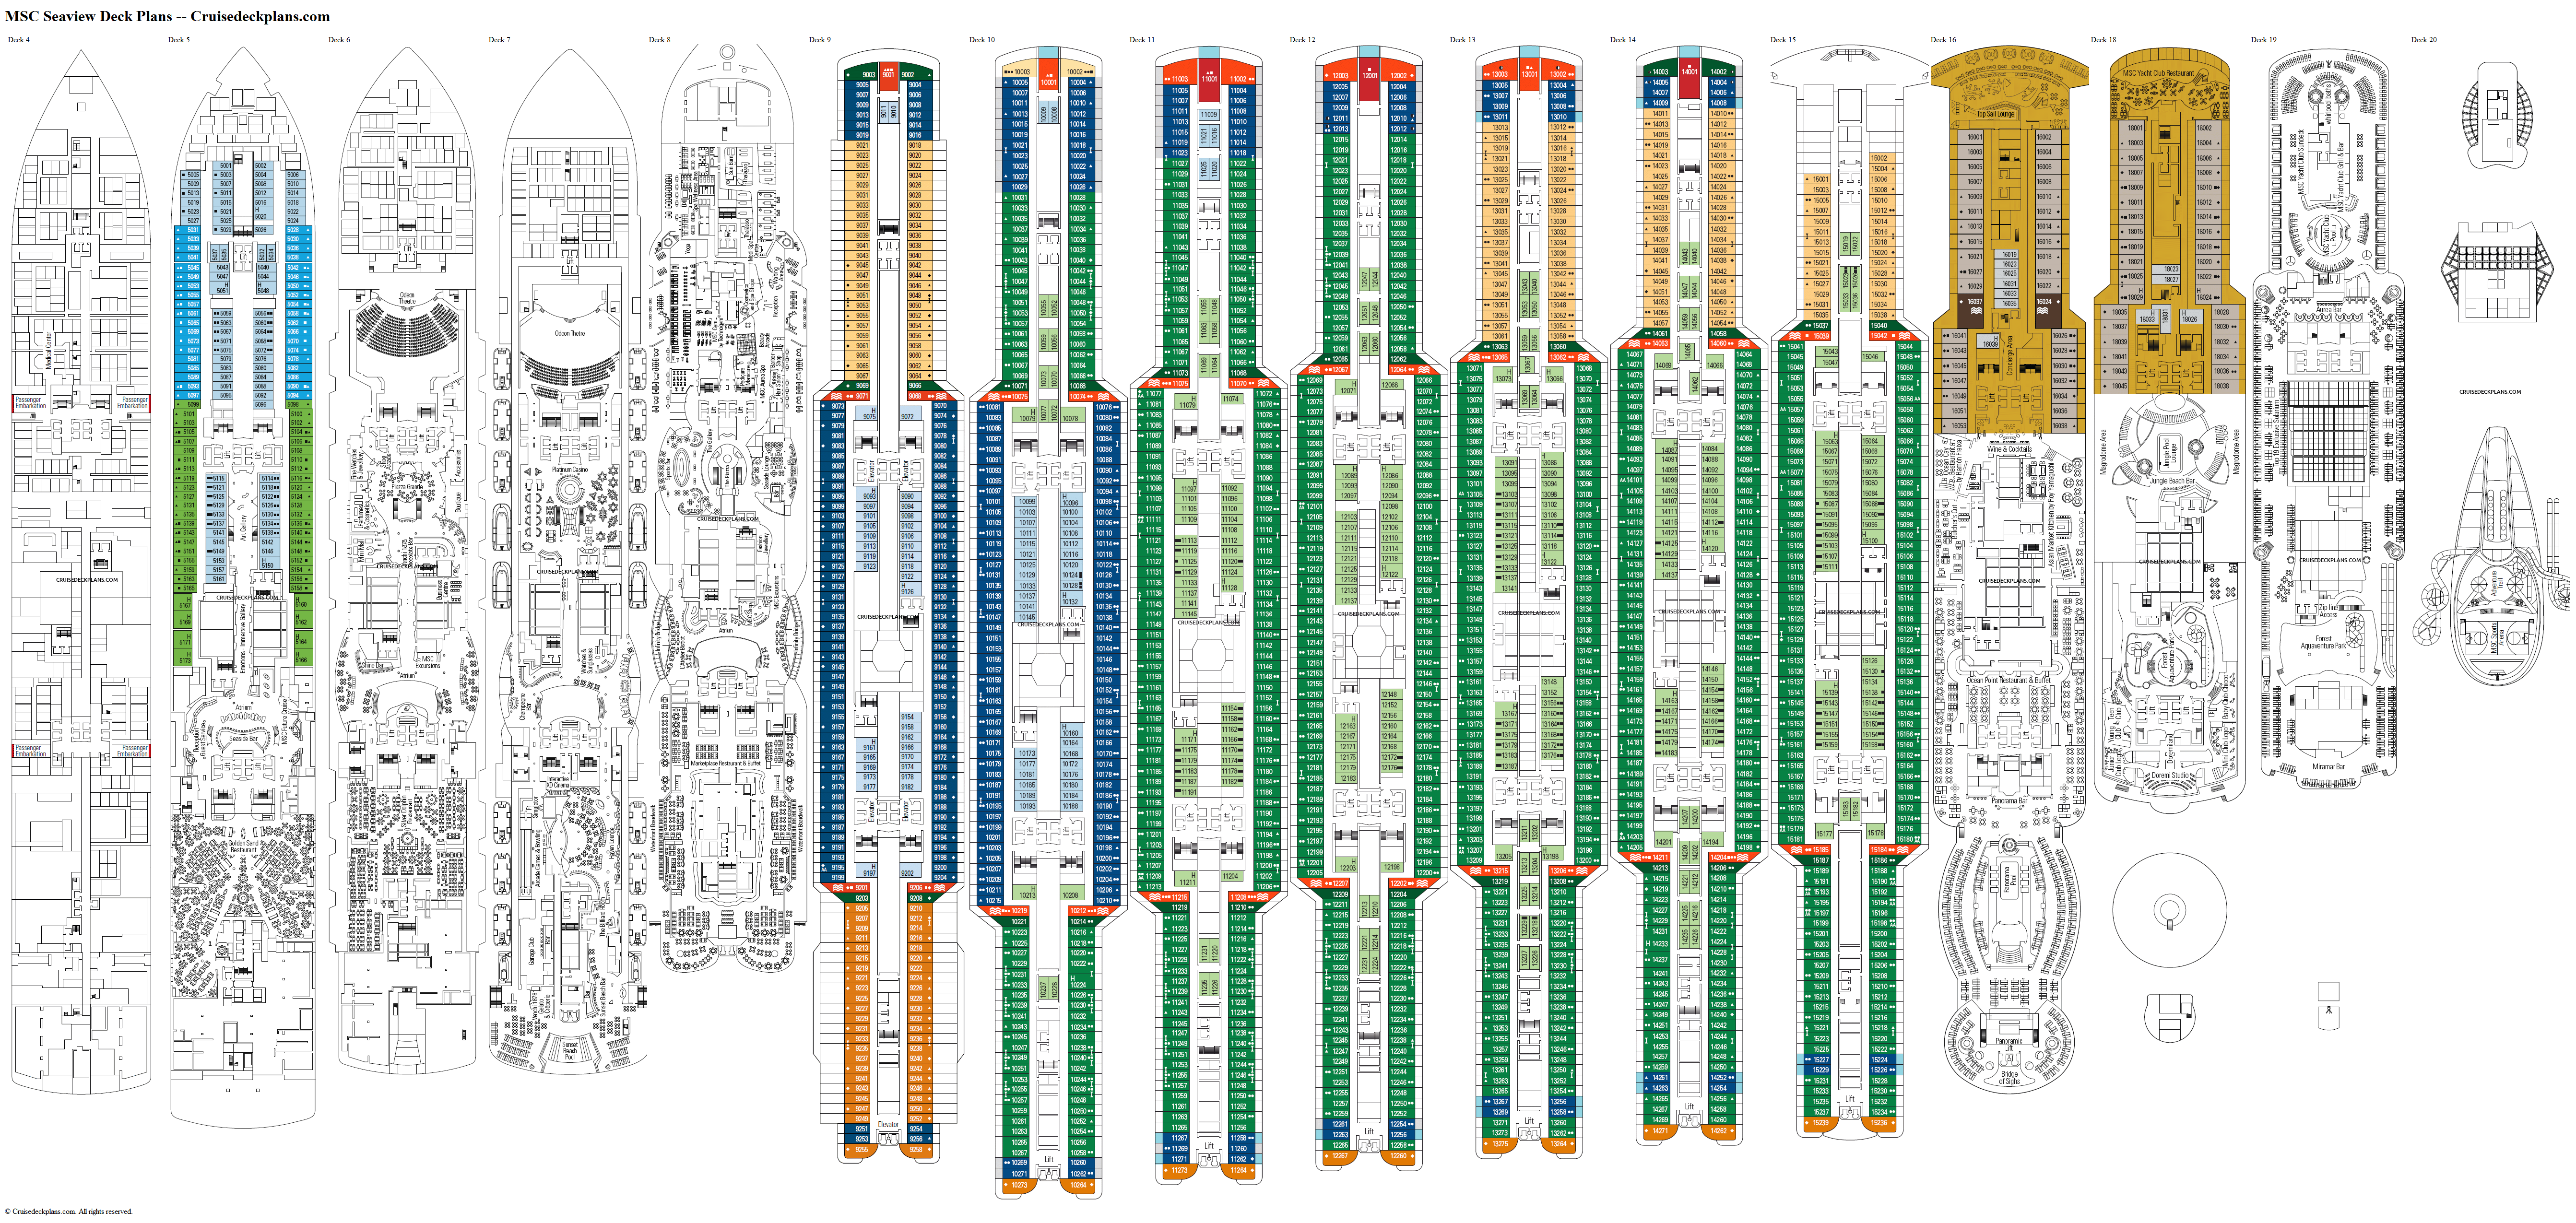 MSC Seaview deck plans image